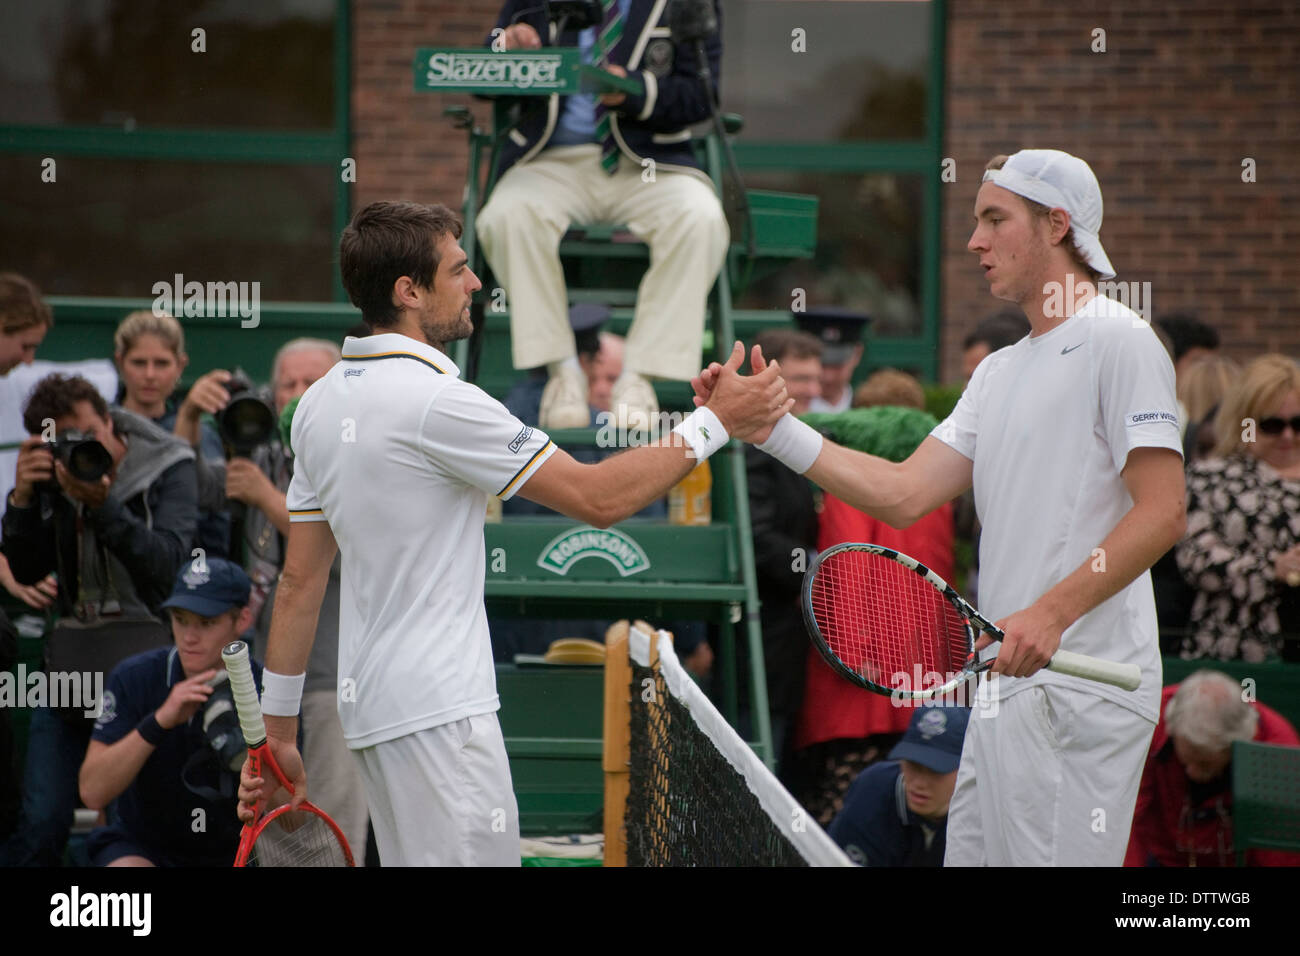 Two male tennis players shake hands after match at Wimbledon championship - Stock Image